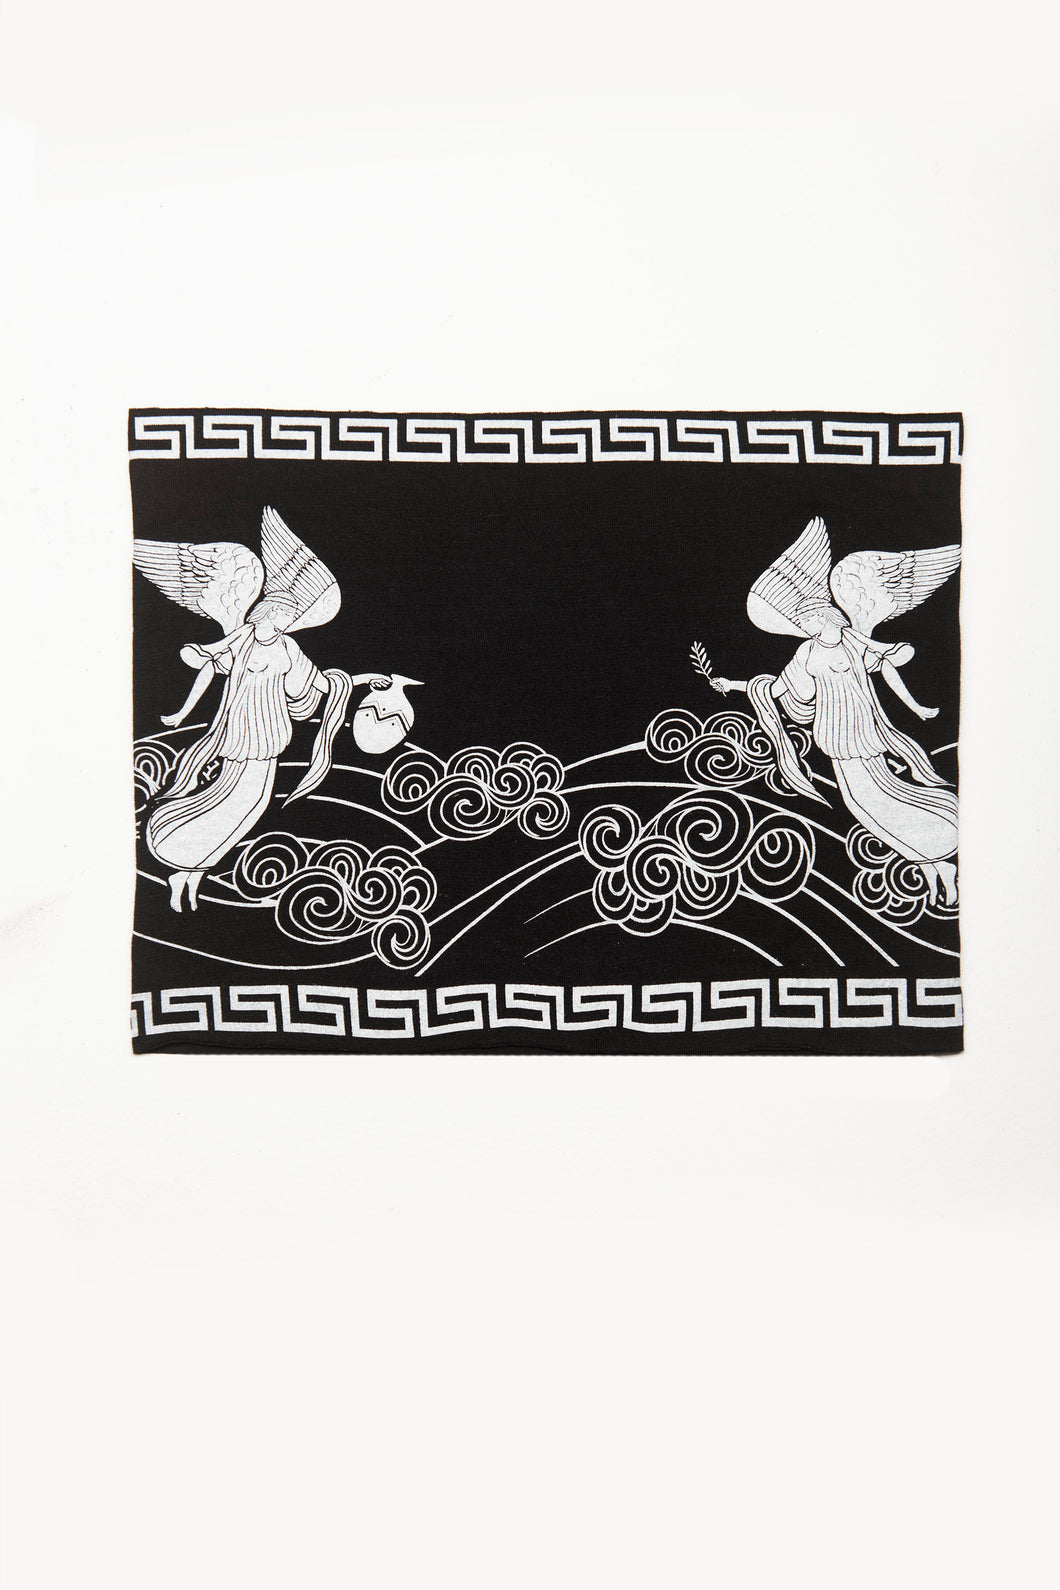 Angeles Print by Deux Goods - white ink on black fabric